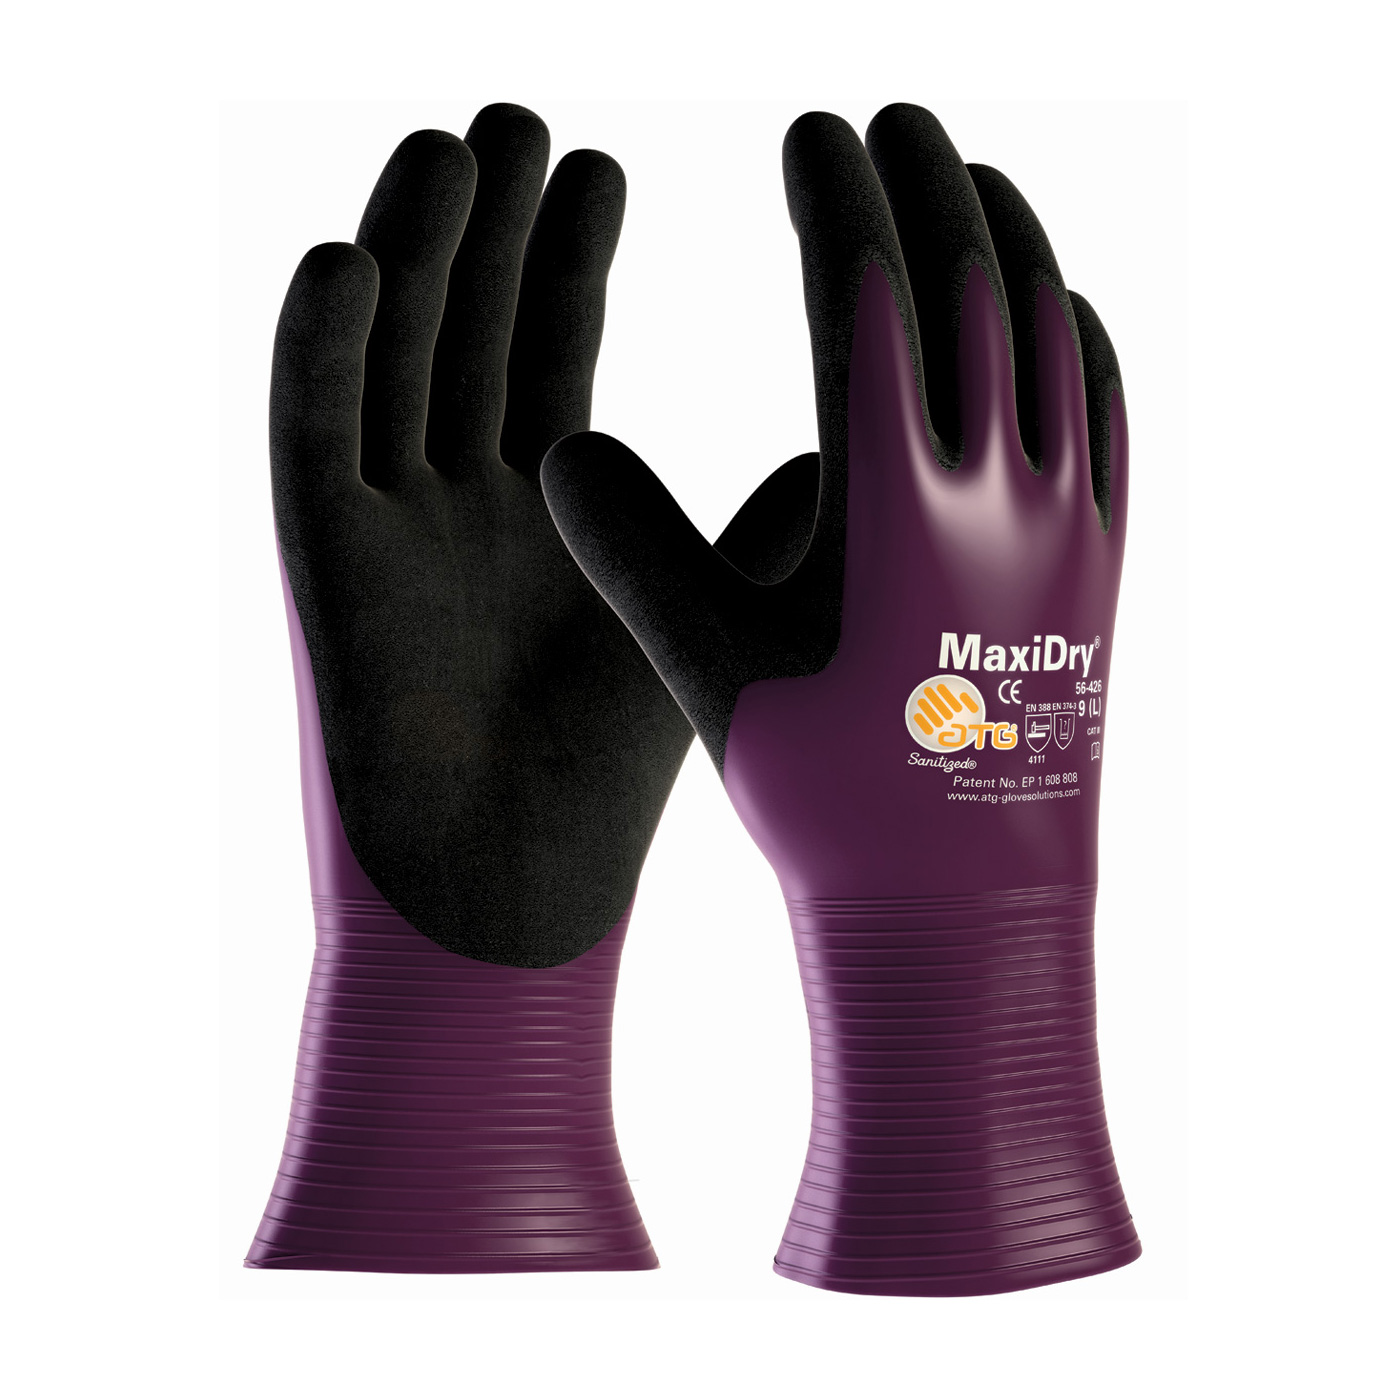 PIP® MaxiDry® Ultra Lightweight Nitrile Glove, Fully Dipped with Seamless Knit Nylon / Lycra Liner and Non-Slip Grip on Palm & Fingers #56-426